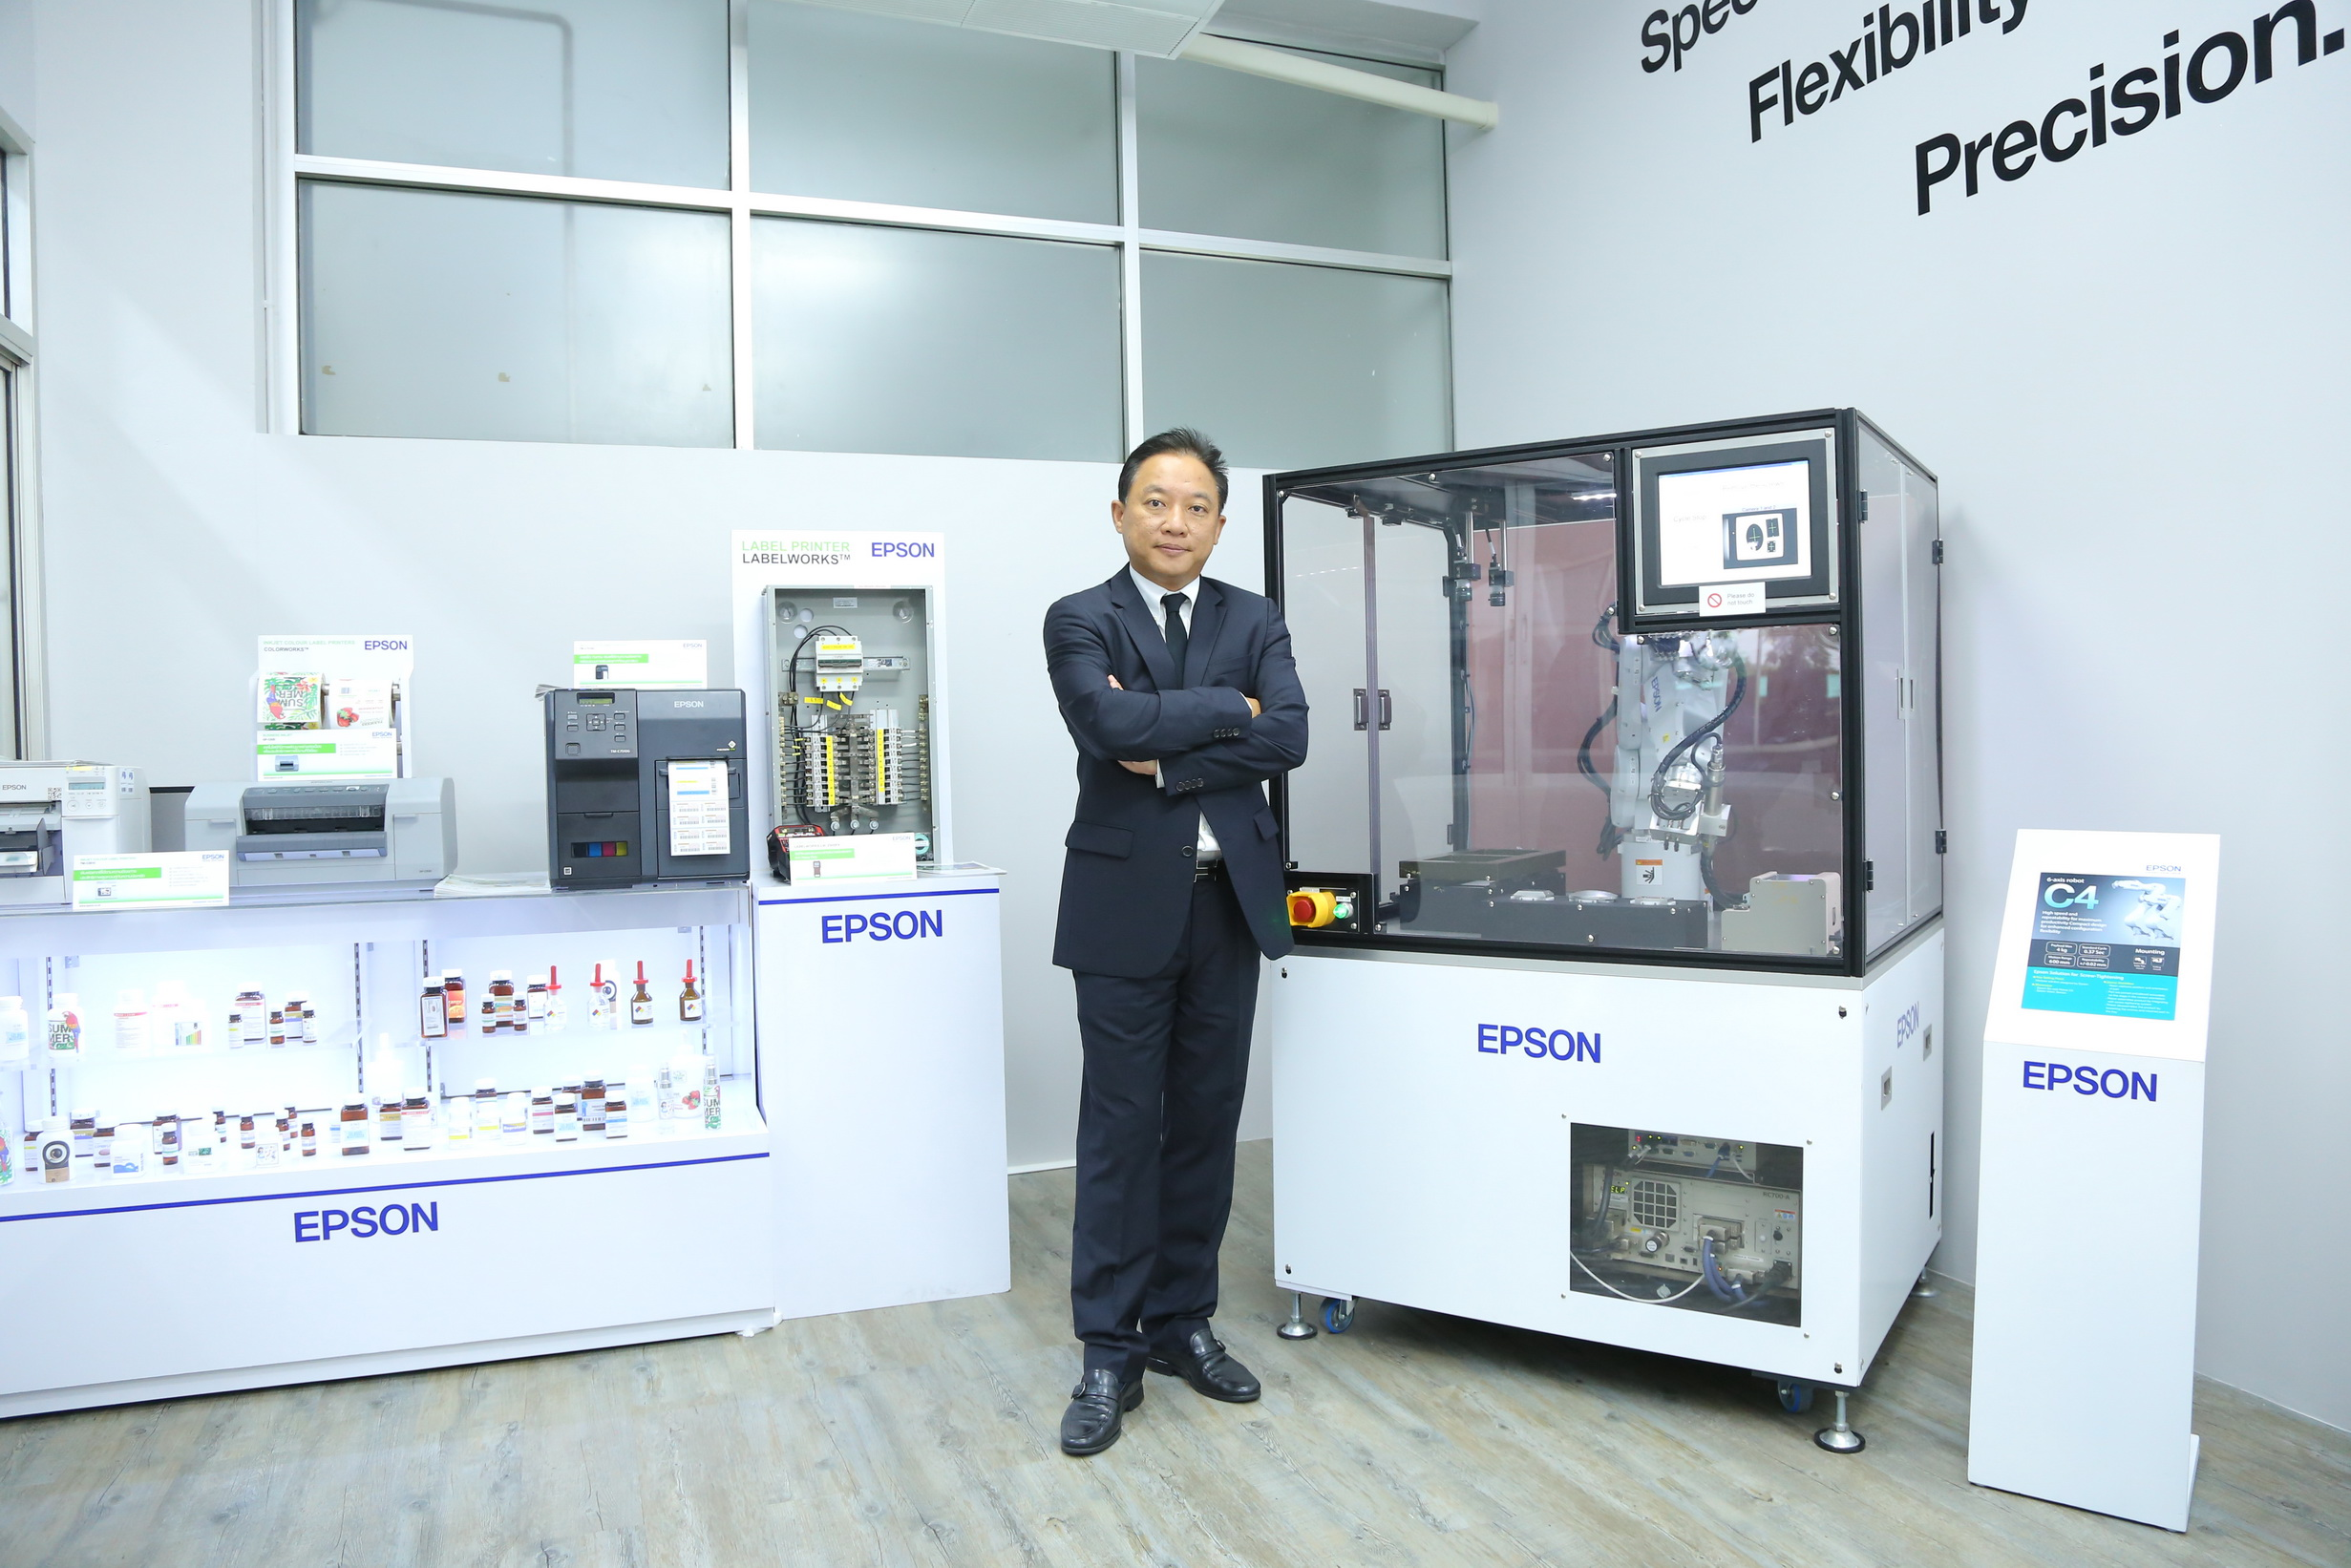 Epson Launches Robotics Innovation Center to Support   Thai Manufacturers' Use of Robots in Thailand 4.0 Era